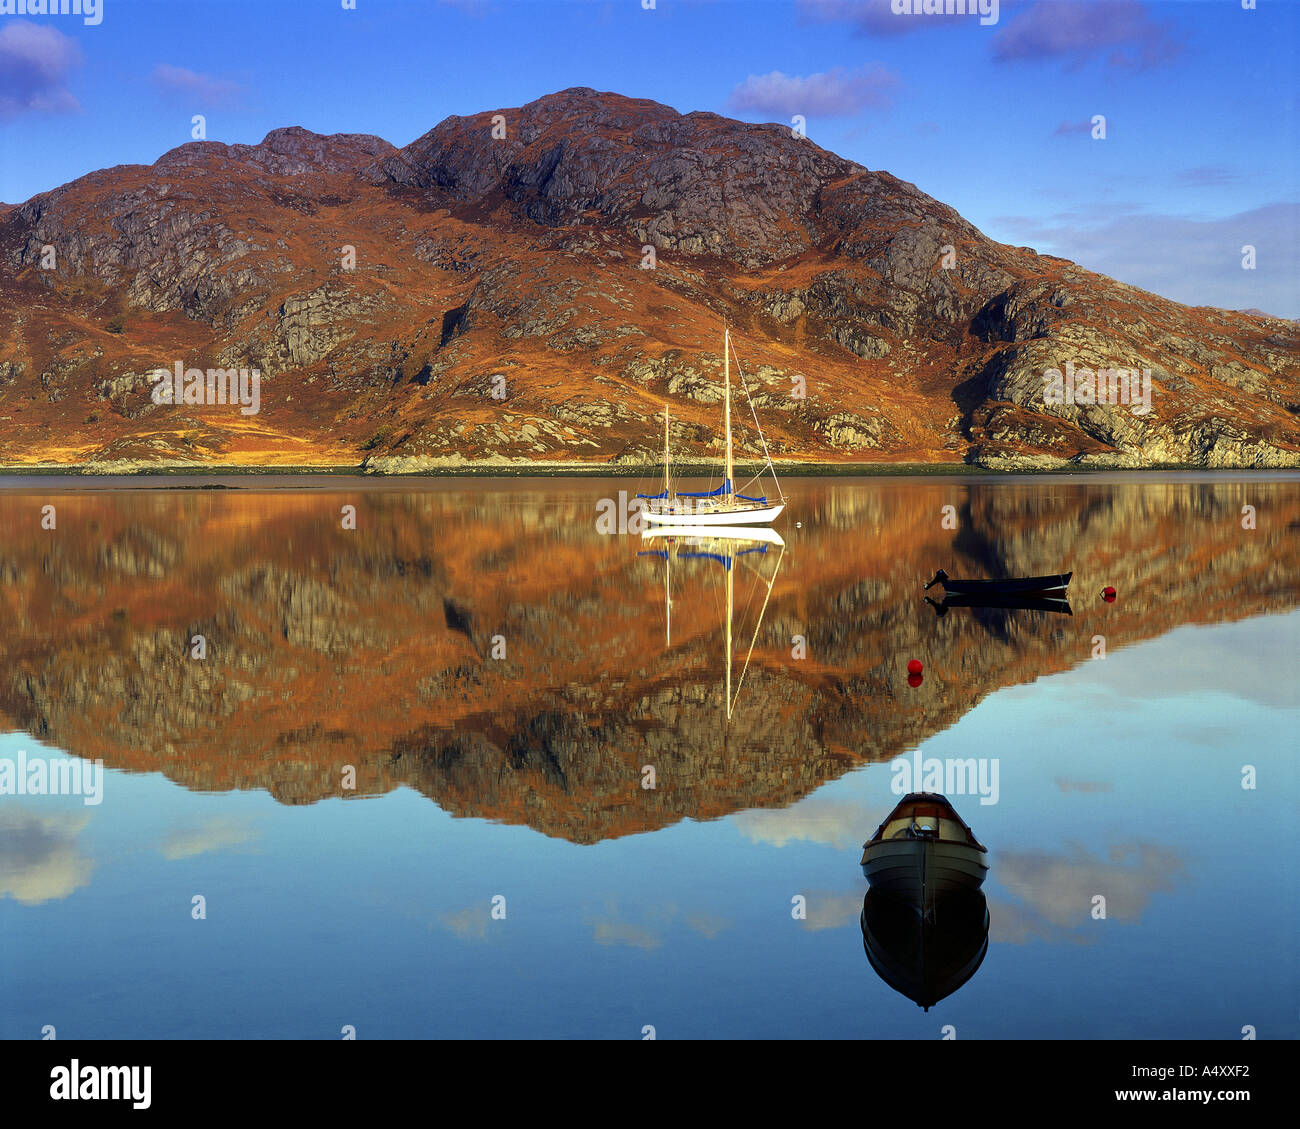 GB - SCOTLAND: Loch Ailort in the Highlands - Stock Image